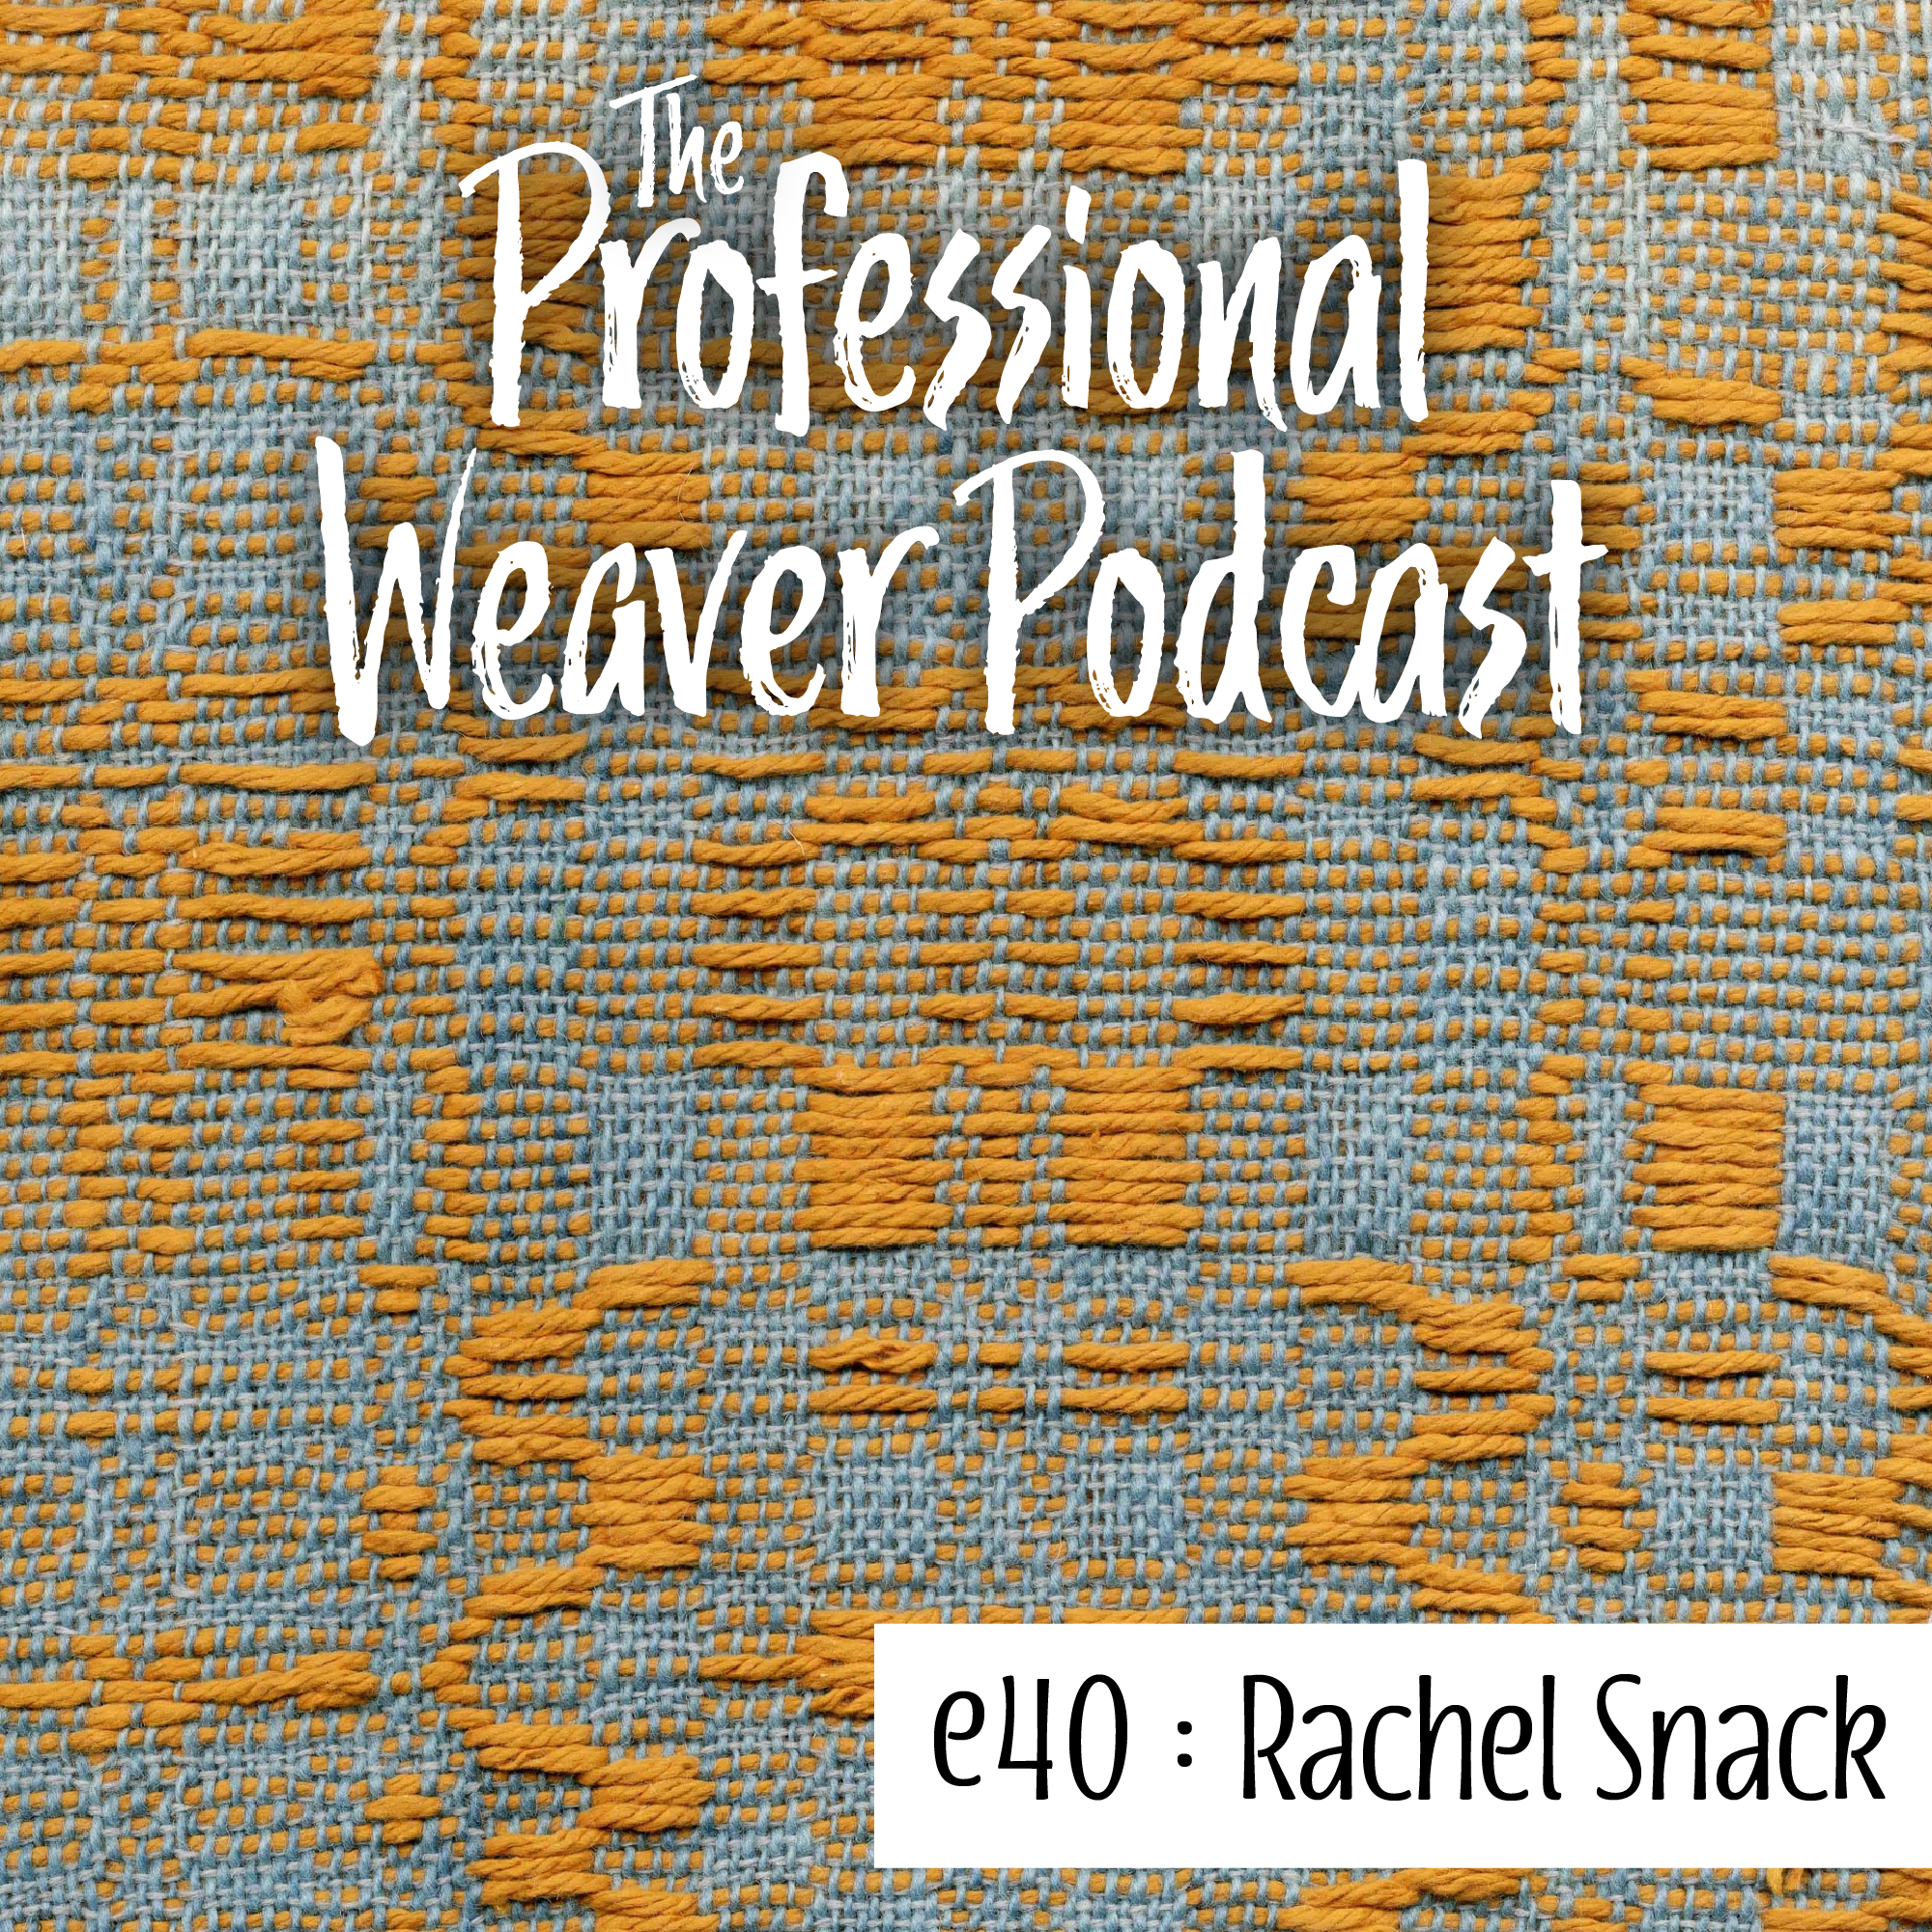 Episode 40 : Rachel Snack